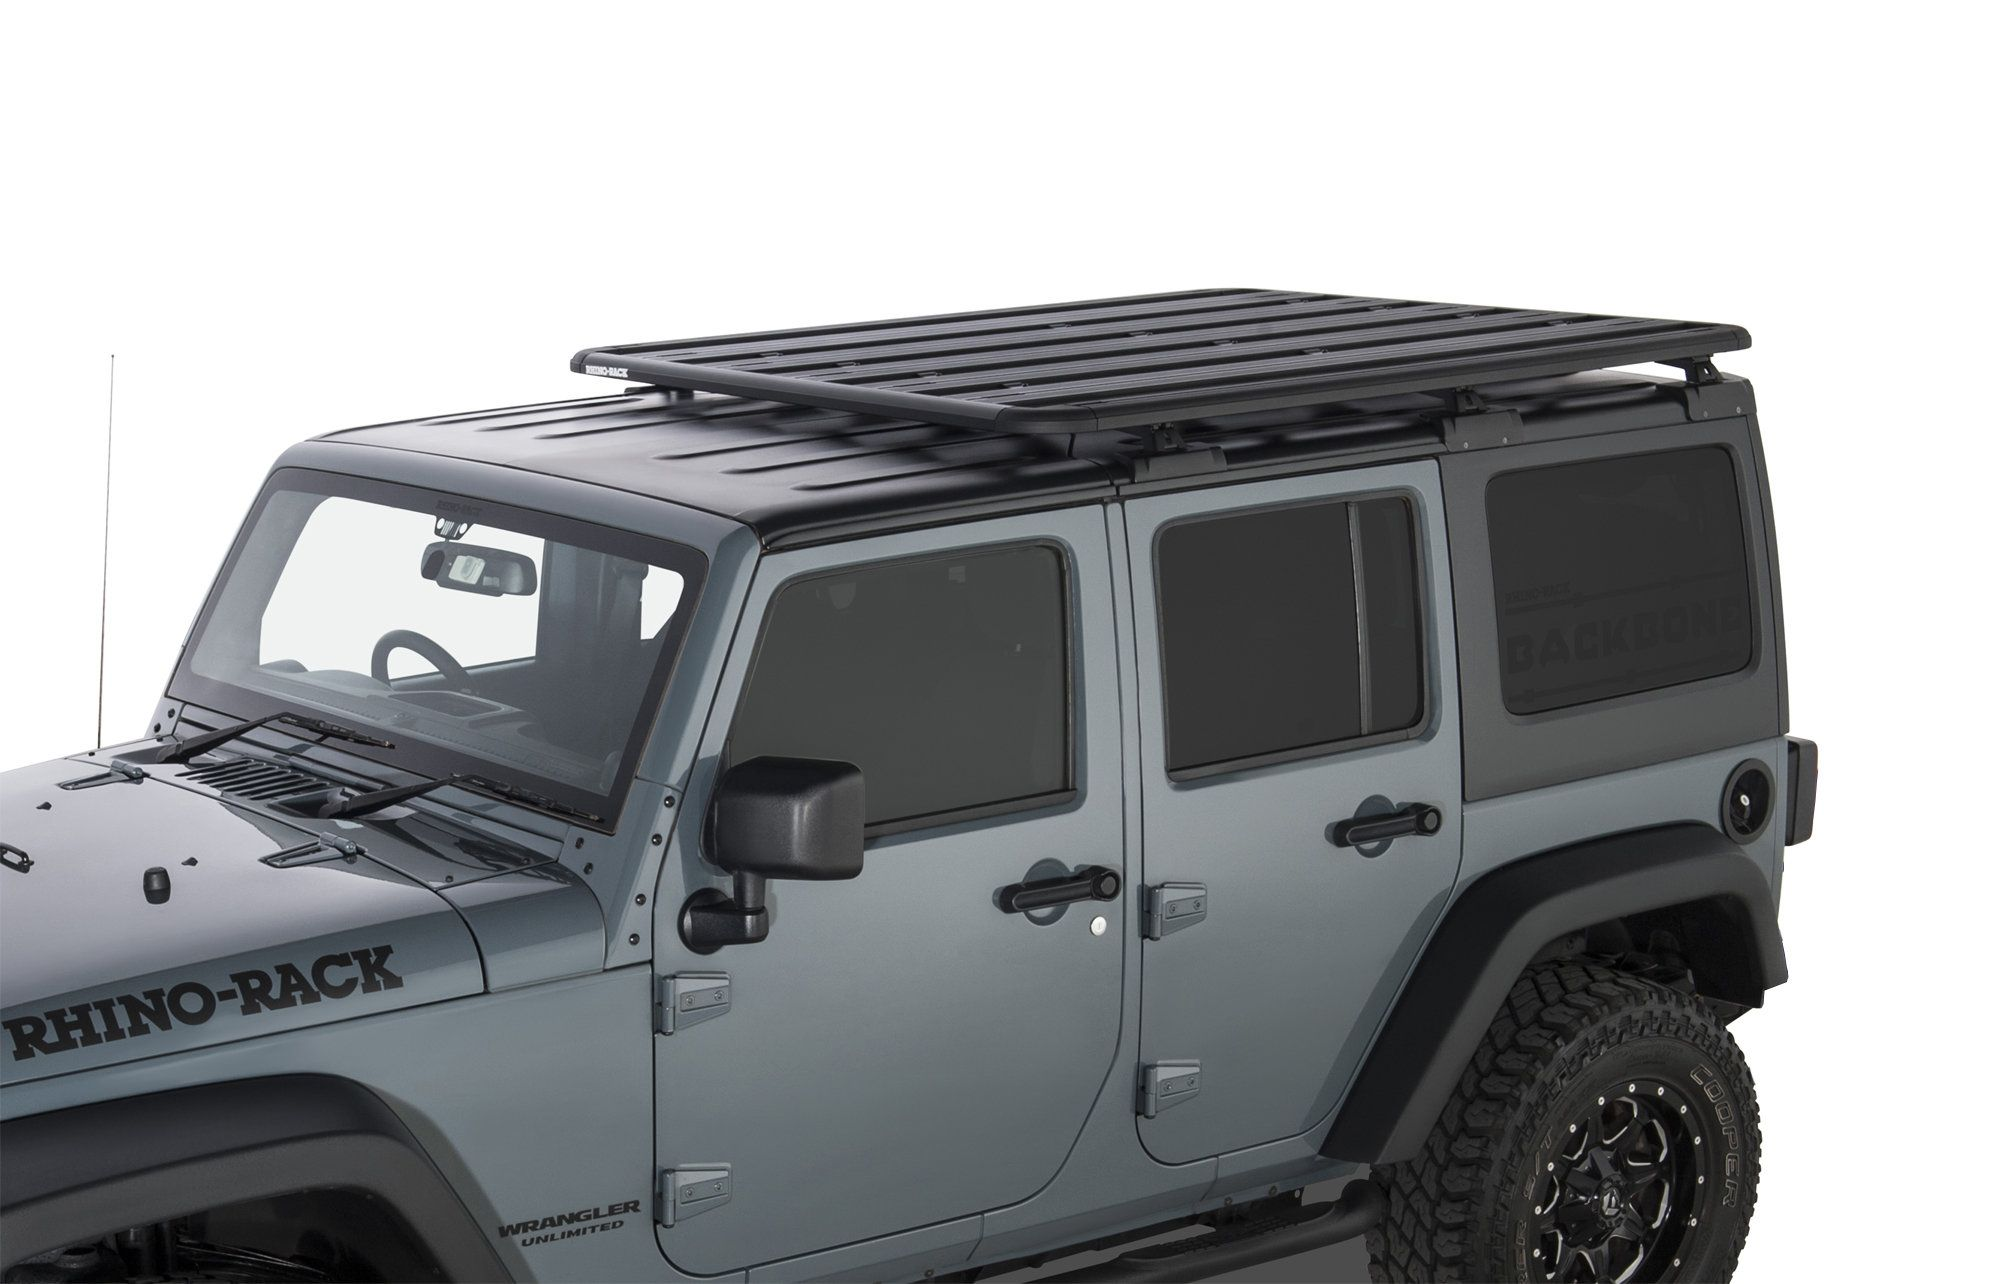 Rhino Rack S Pioneer Rack Is Designed With Quality And Convenience In Mind It Features A 72 X 56 Platform To H Jeep Wrangler Unlimited Jeep Wrangler Jeep Jk